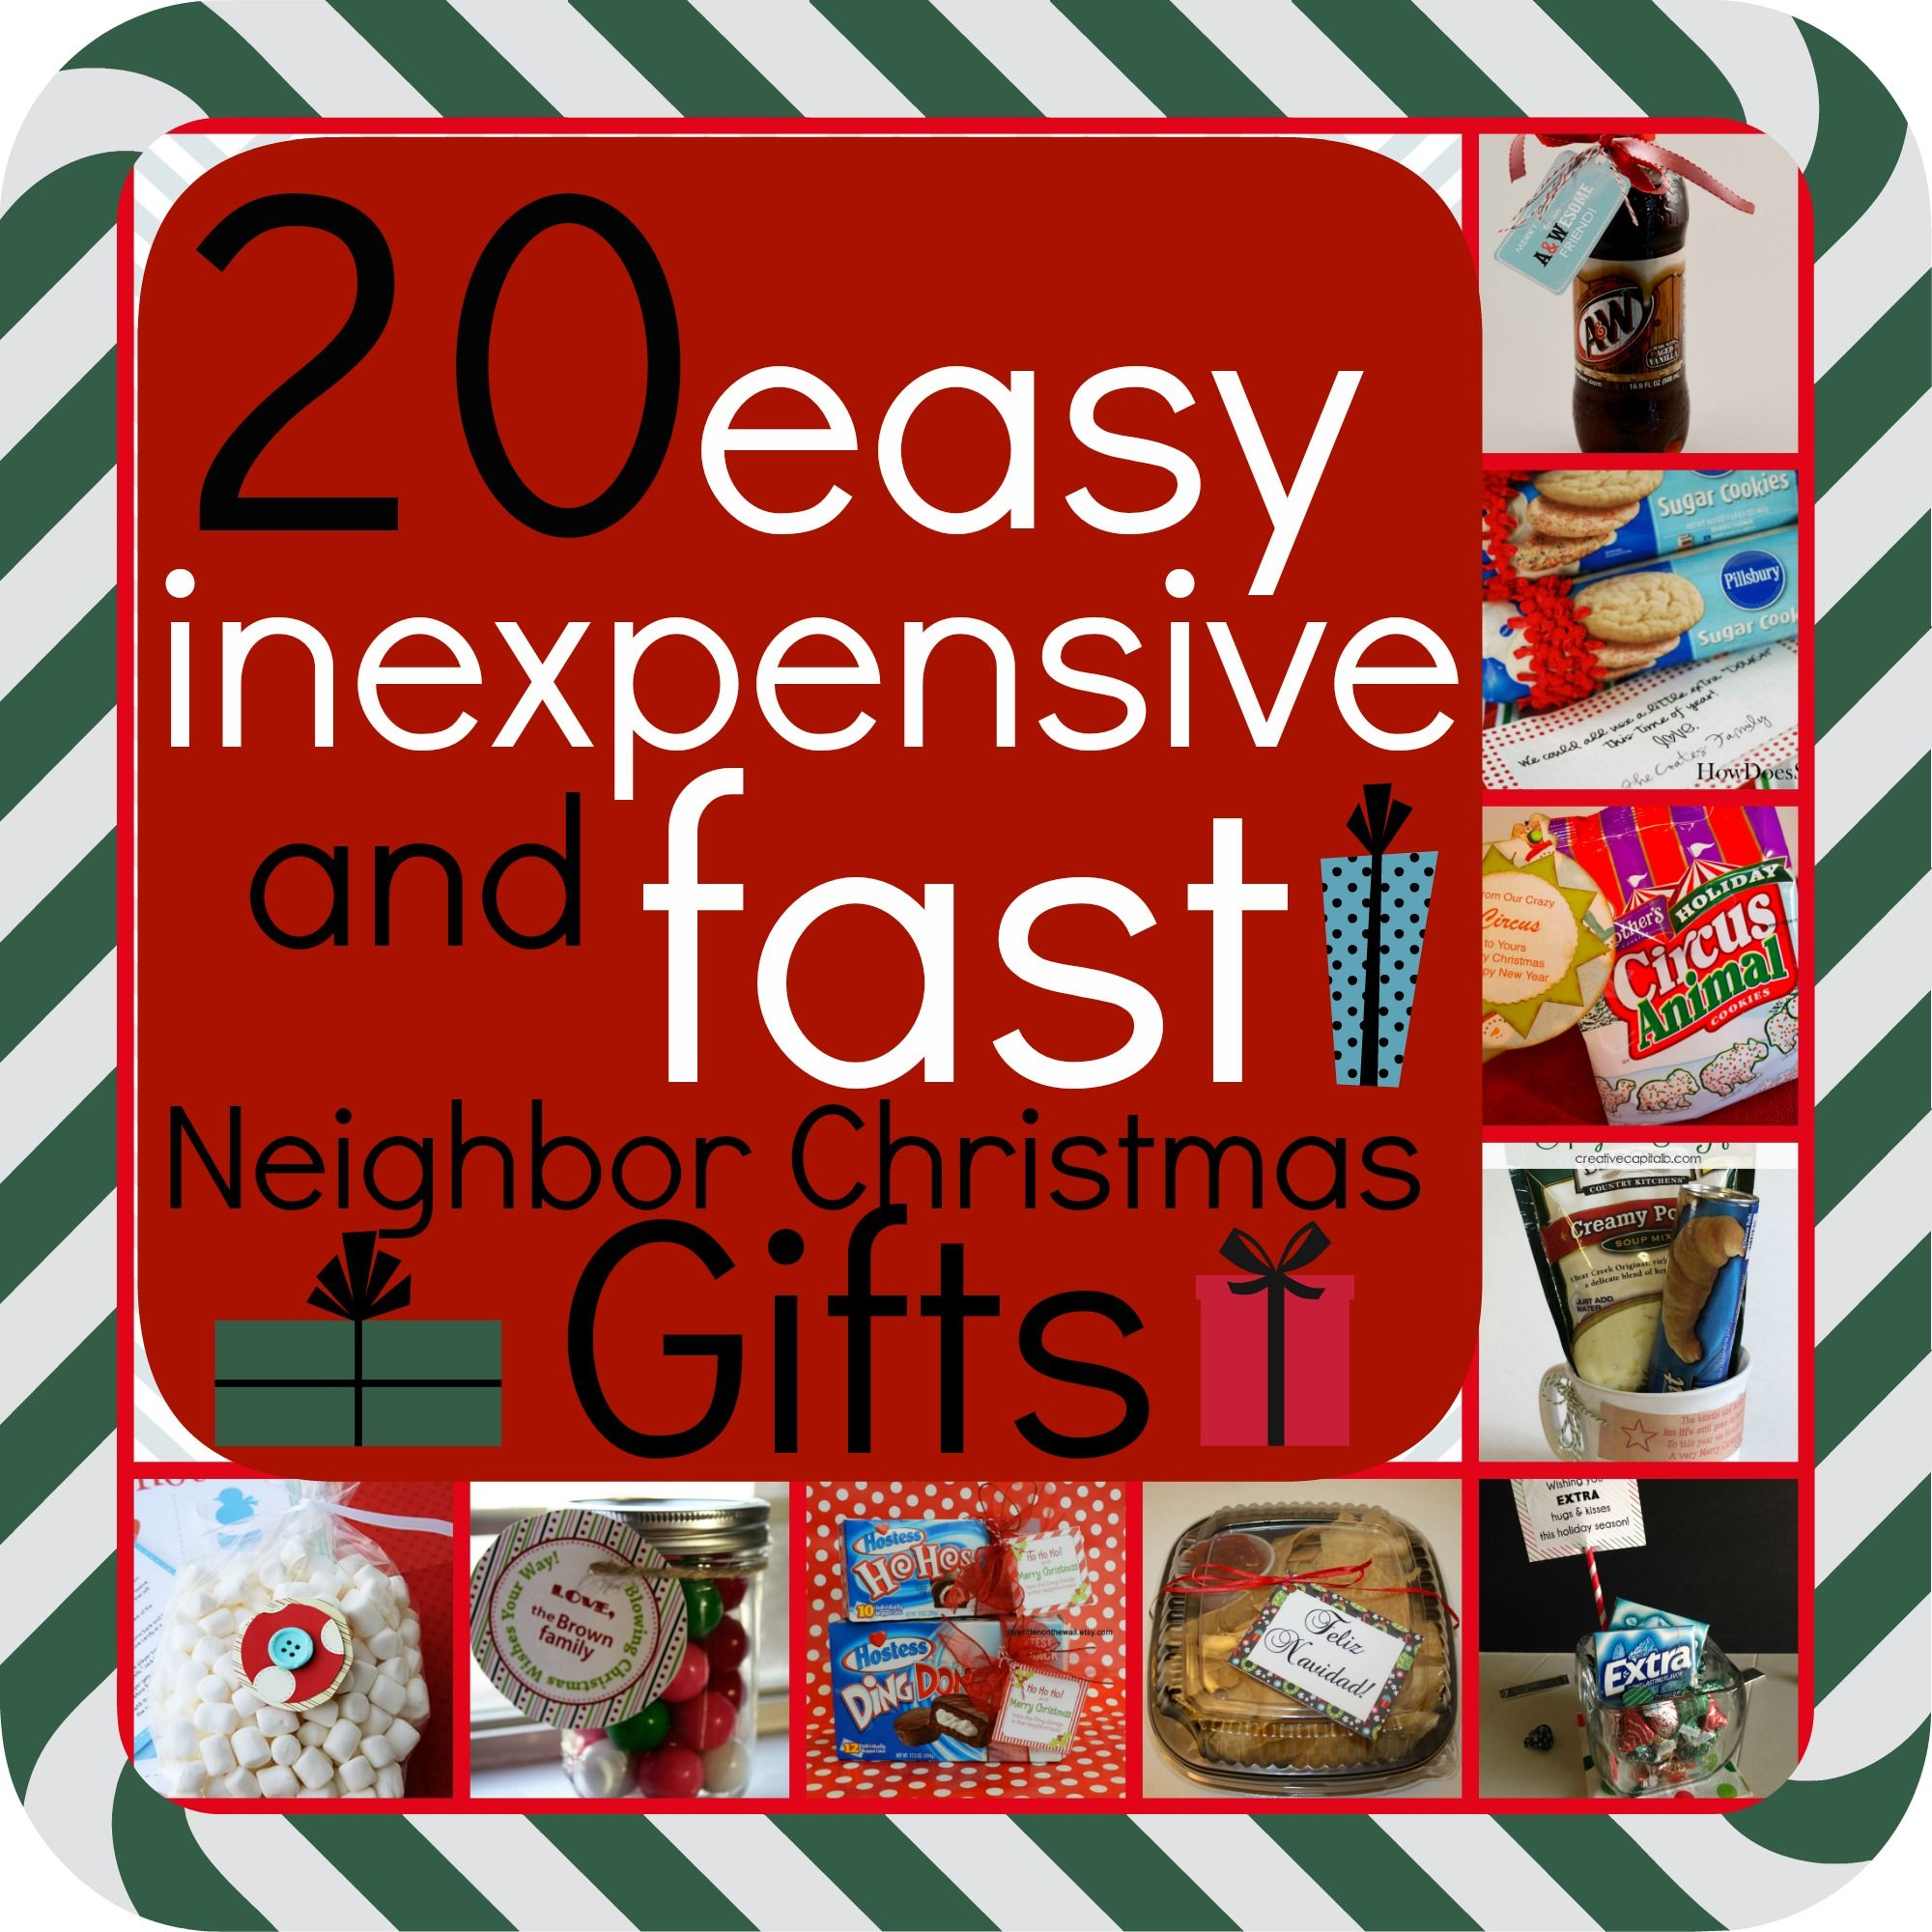 20 easy, inexpensive and FAST Neighbor Christmas Gifts ...